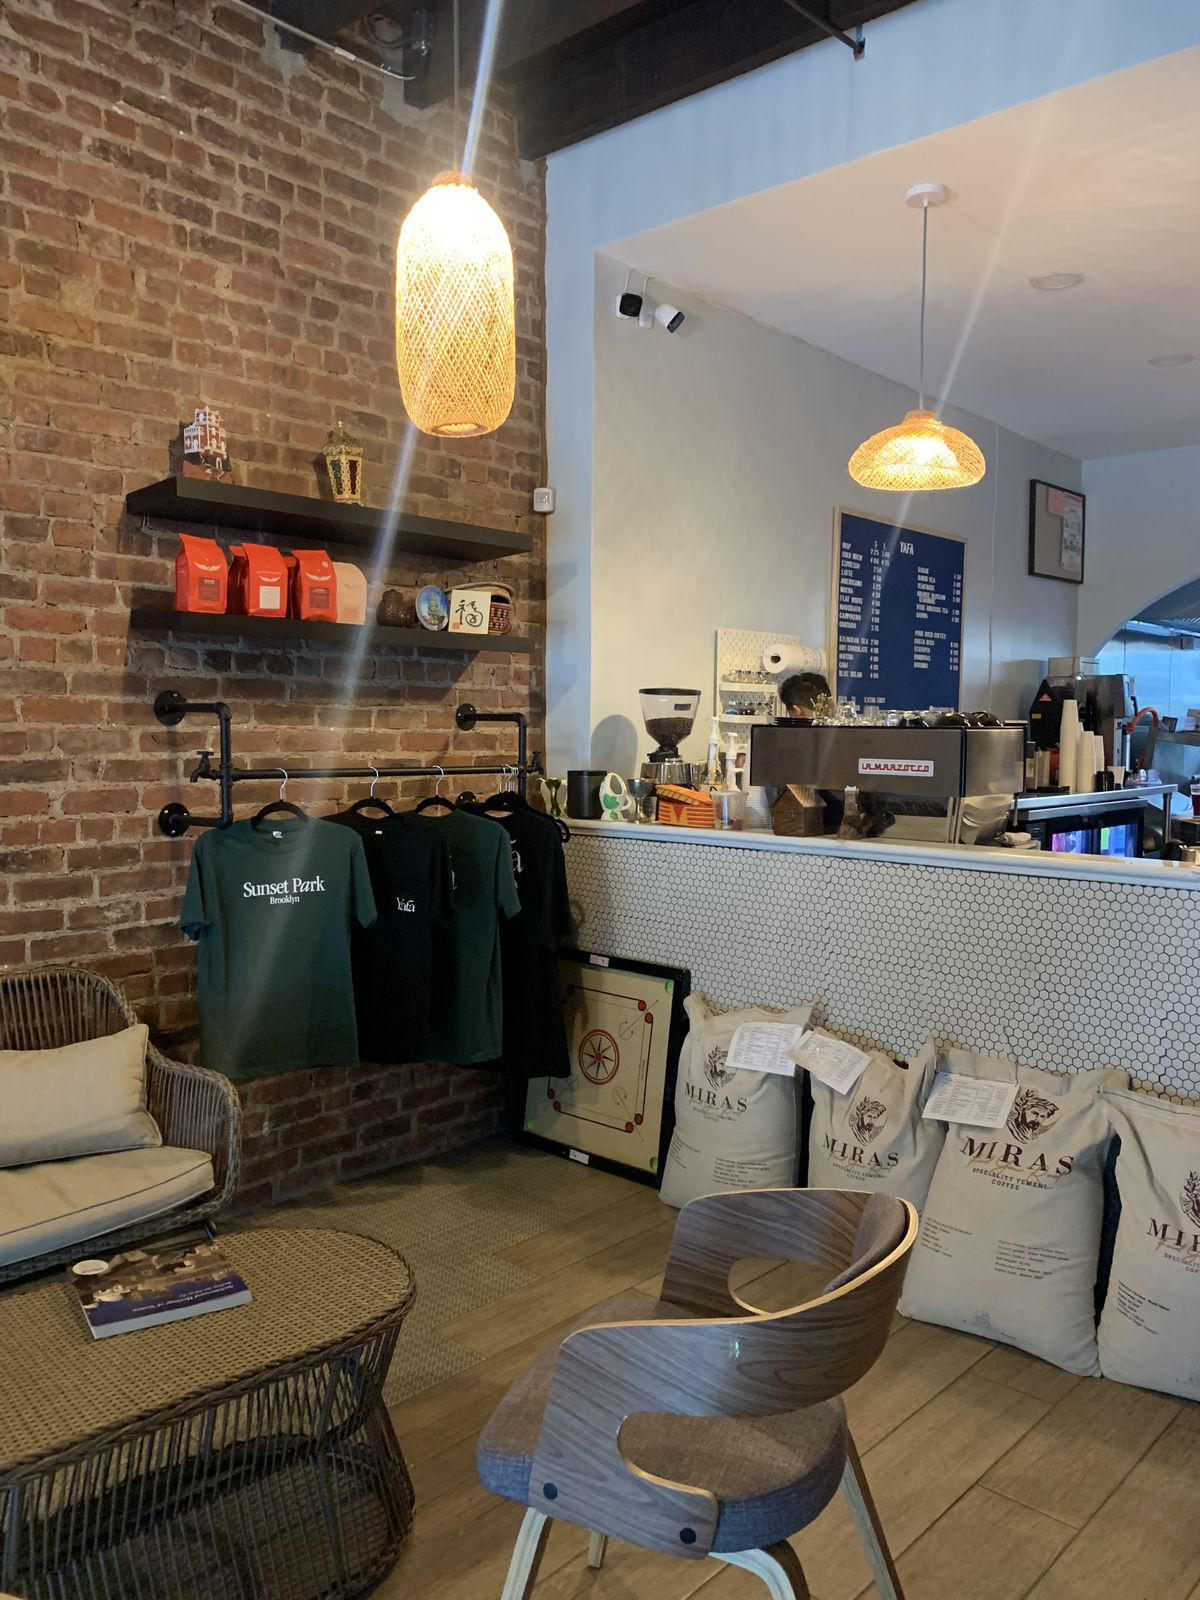 A cafe with a white counter and espresso machines, with green t-shirts hanging against the wall.